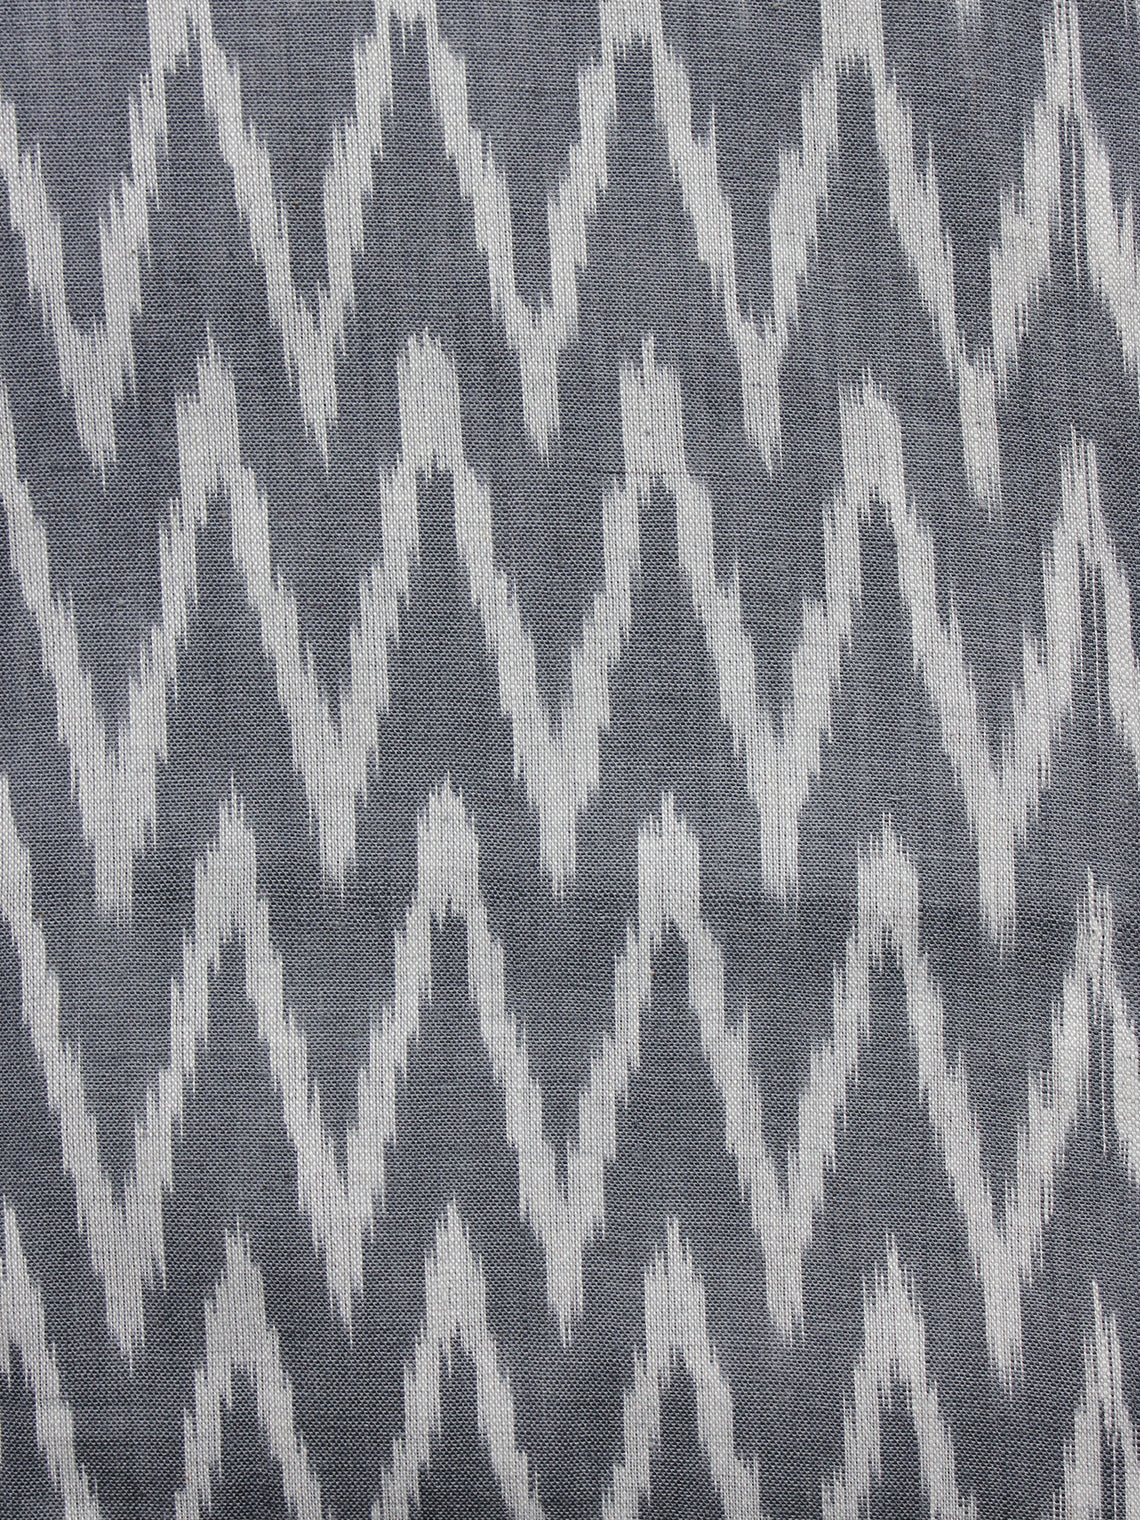 Grey Ivory Pochampally Hand Woven Ikat Fabric Per Meter - F002F951